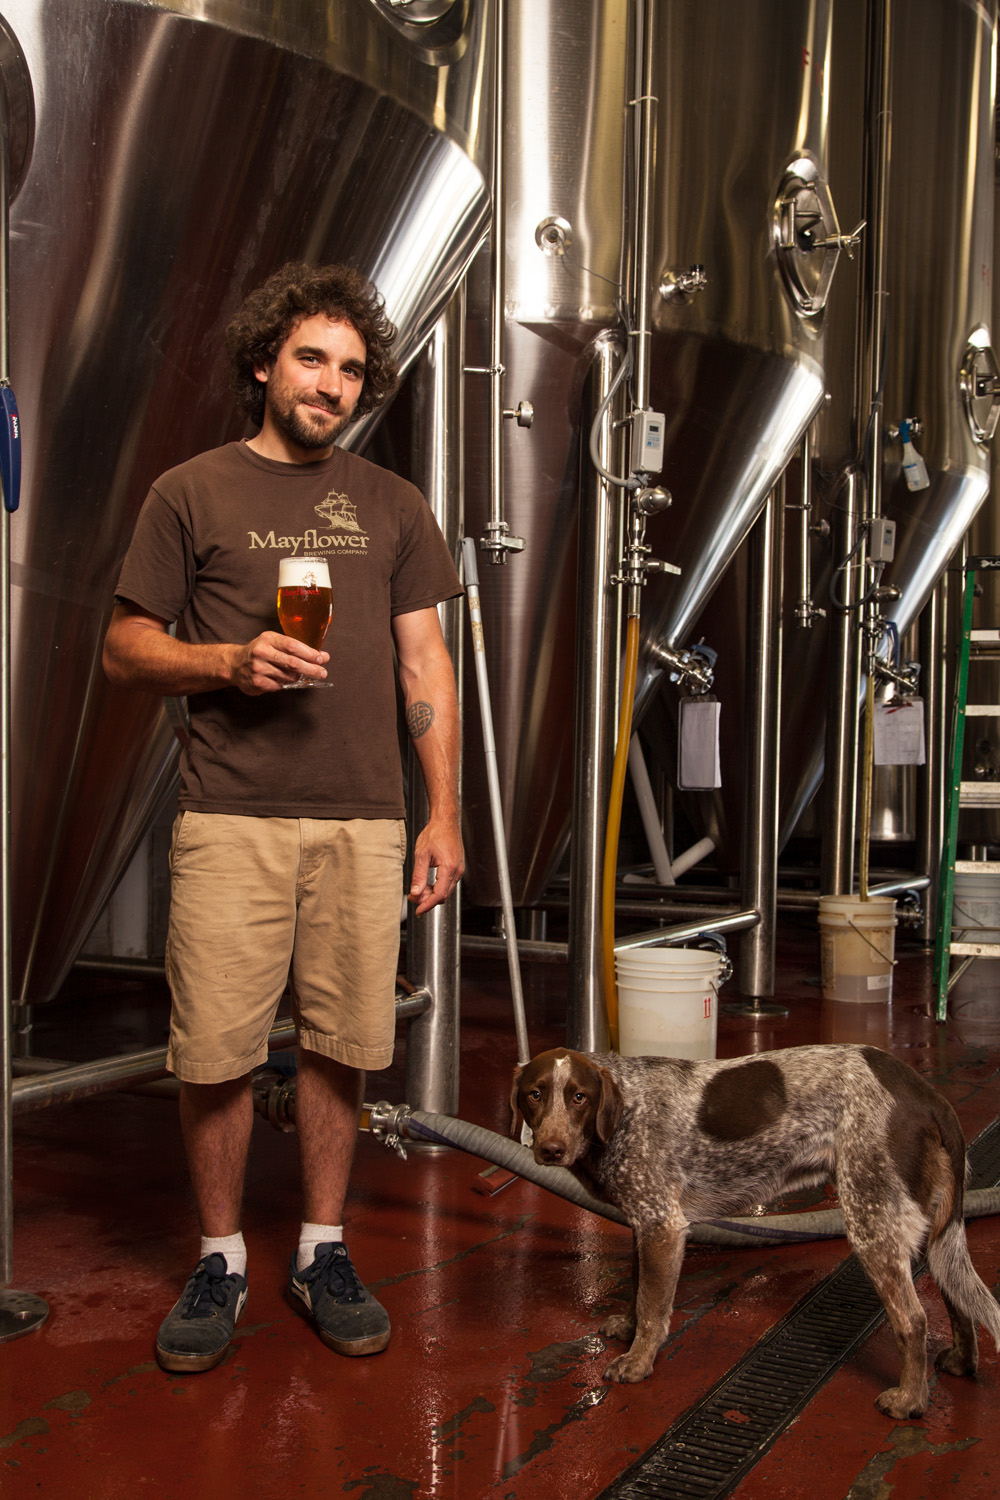 Ryan Gwozdz, Brewmaster with Brewery Dog Otto Mayflower Brewing Co. Plymouth, MA Established in 2007